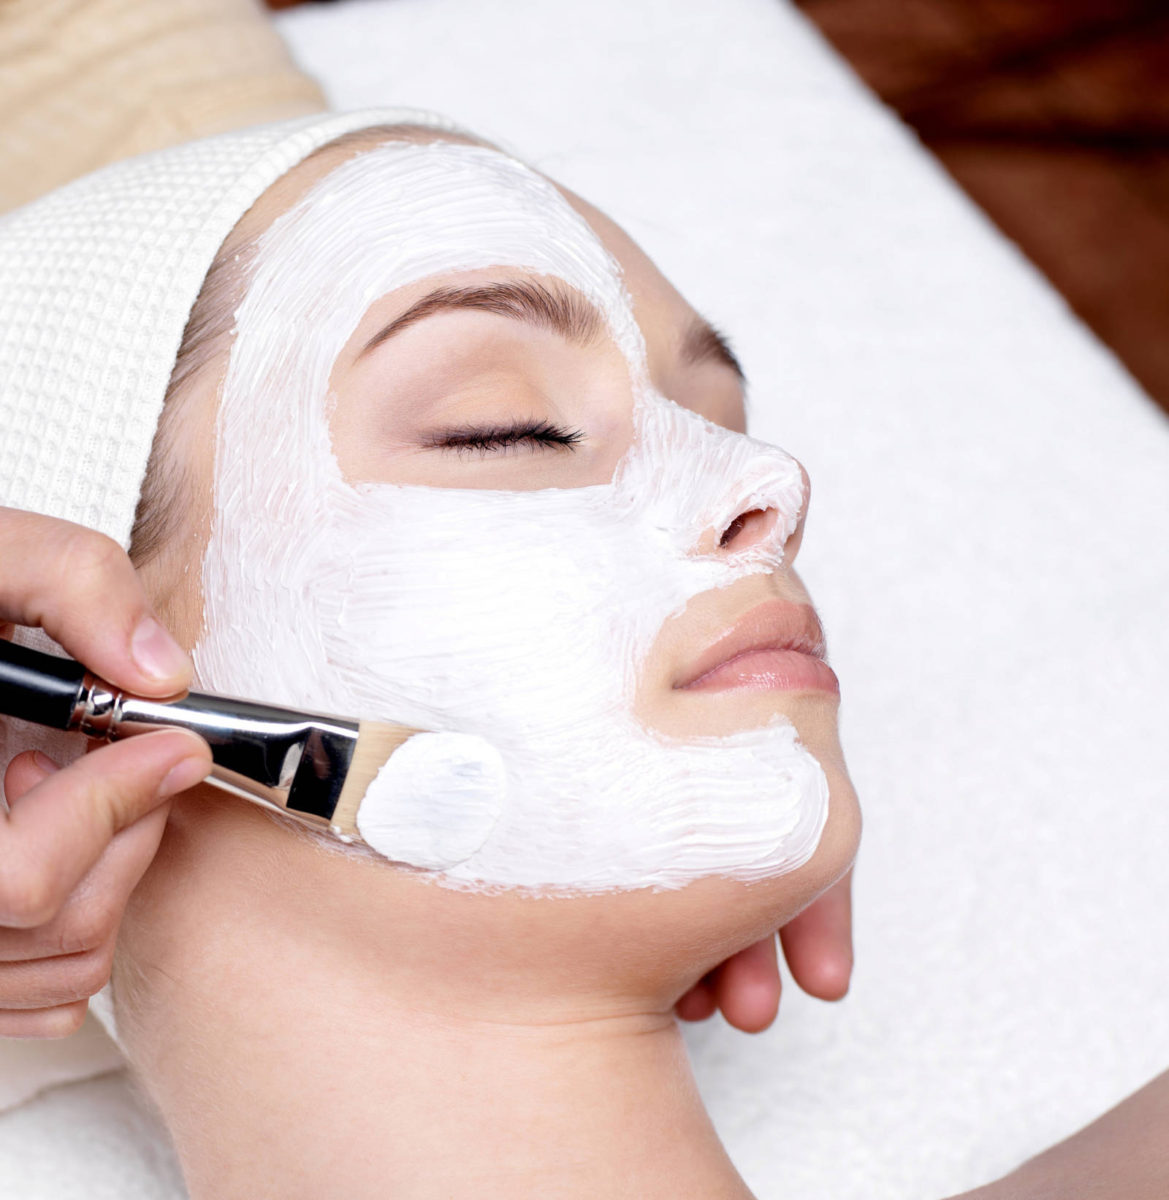 Just Cleansing? 5 Other Things You Should Be Doing For Healthy Skin